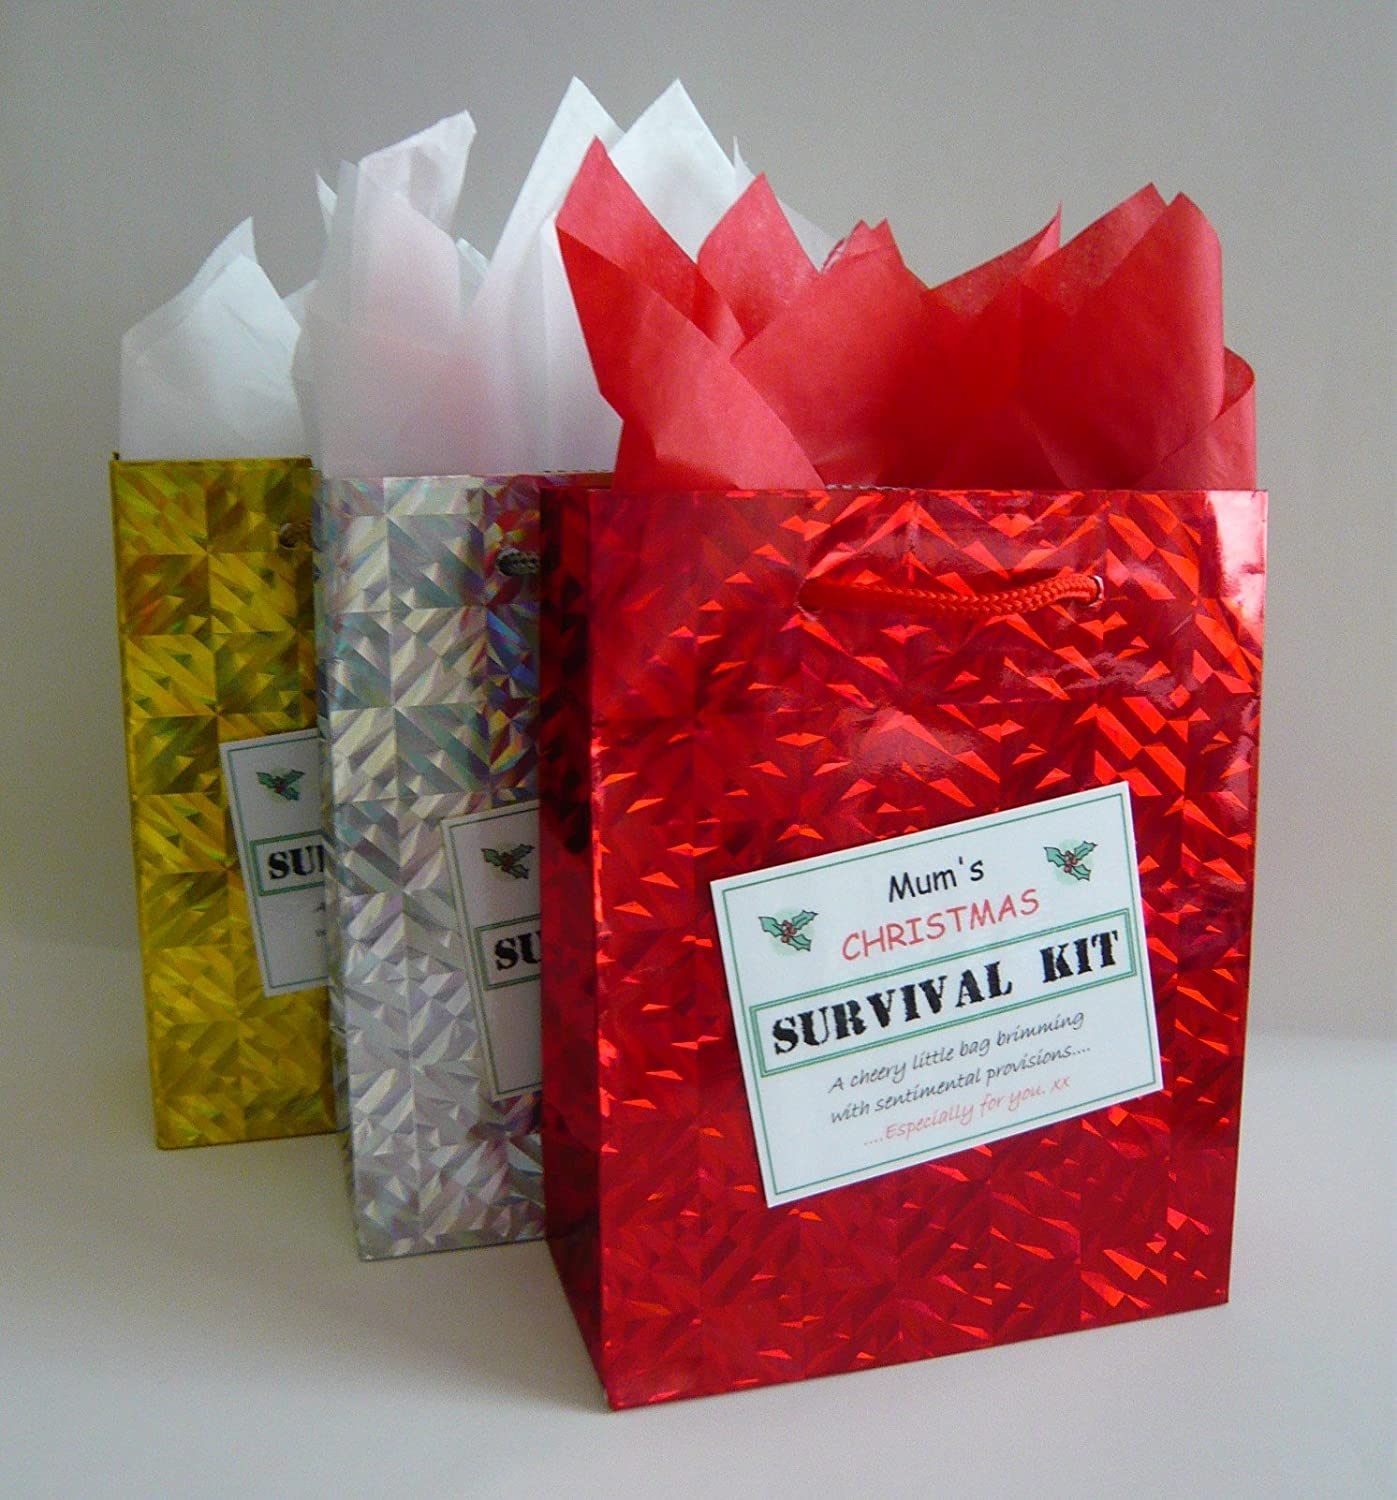 Jemsideas Christmas Survival Kit In A Can Novelty Xmas Gift /& Card For A Friend